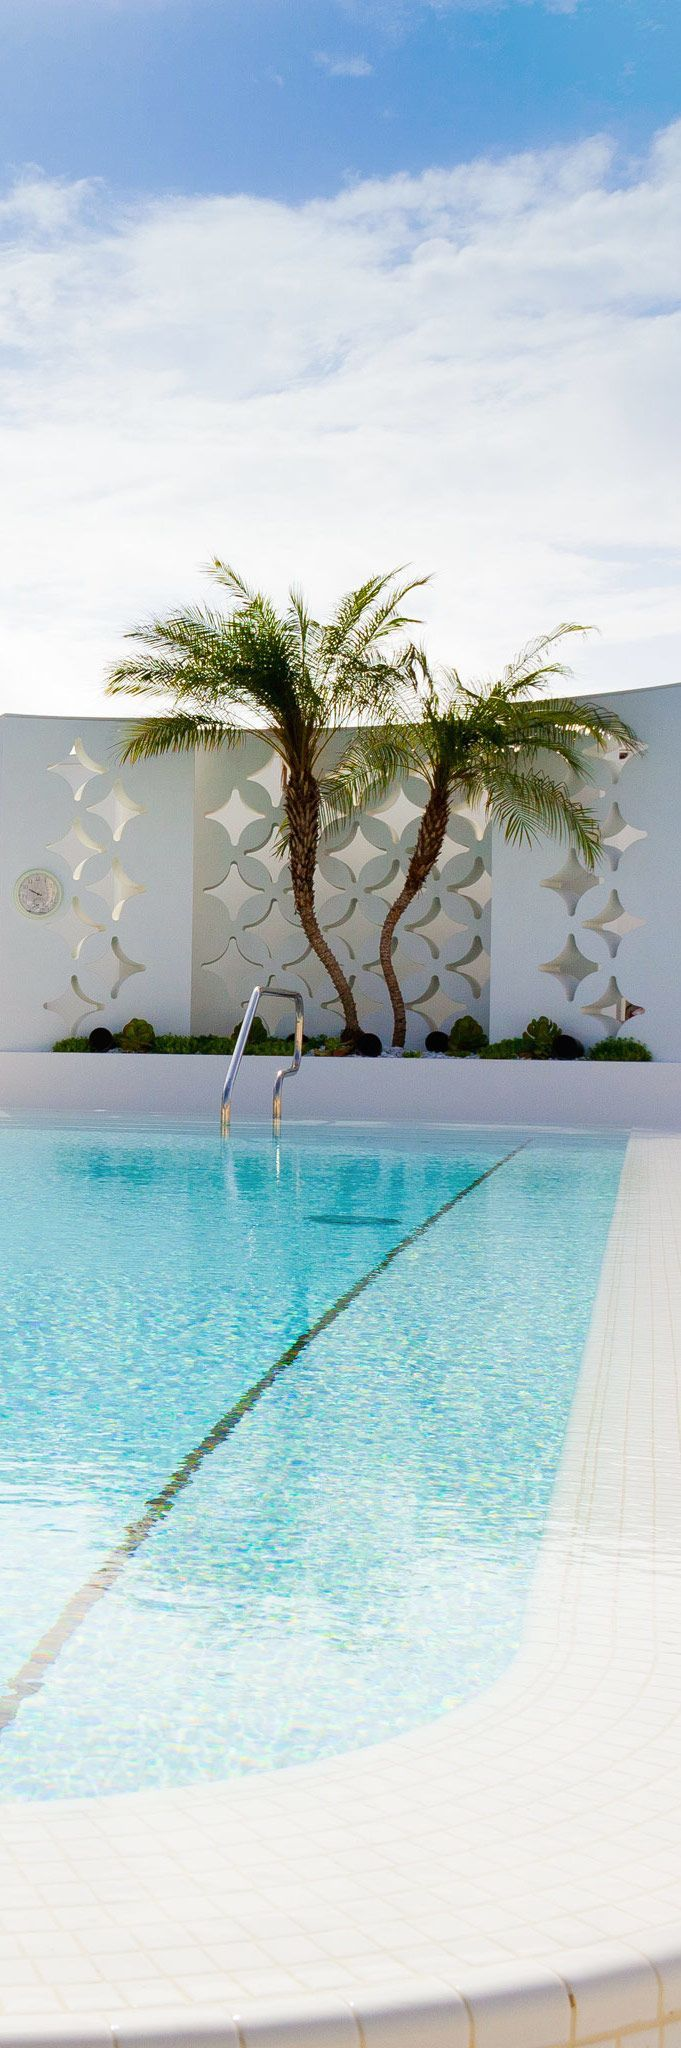 149 best retro concrete wall screen designs images on pinterest arquitetura facades and - Palm beach swimming pool ...